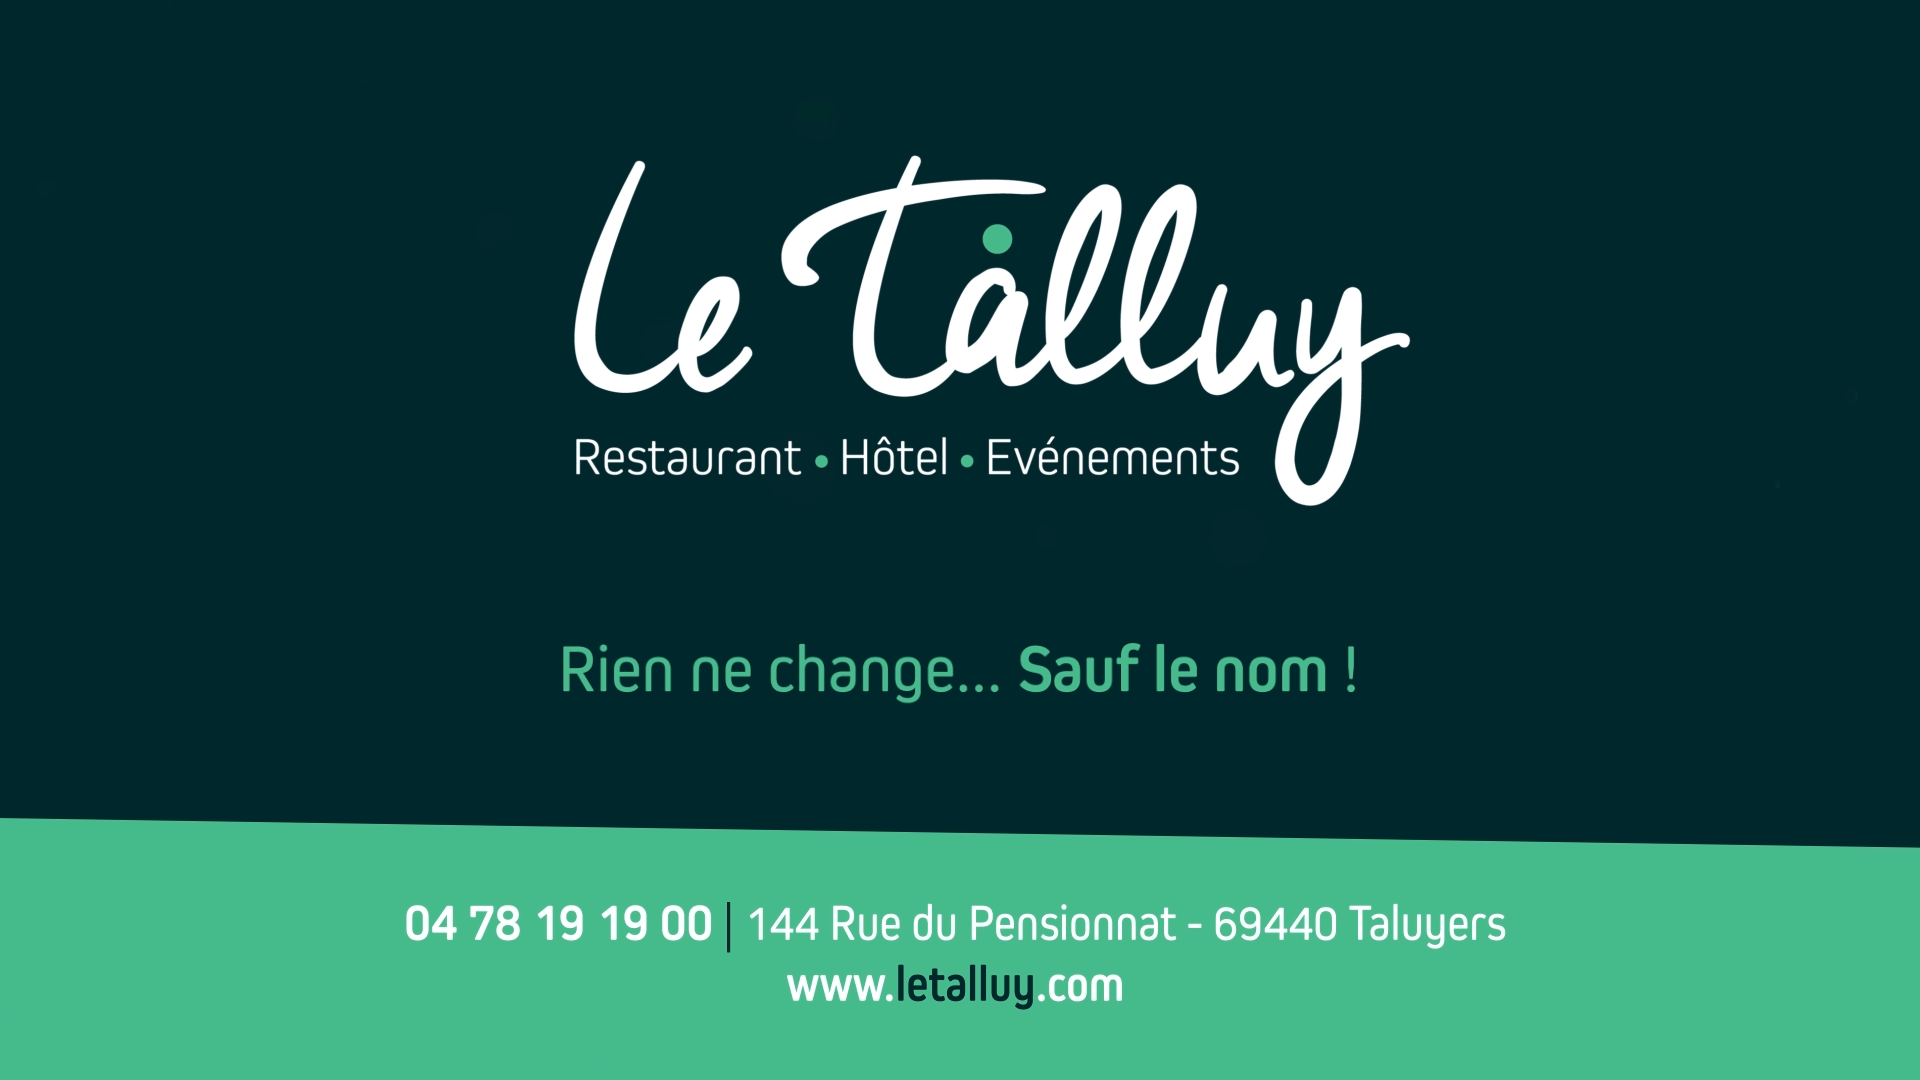 Le Château Talluy devient Le Talluy